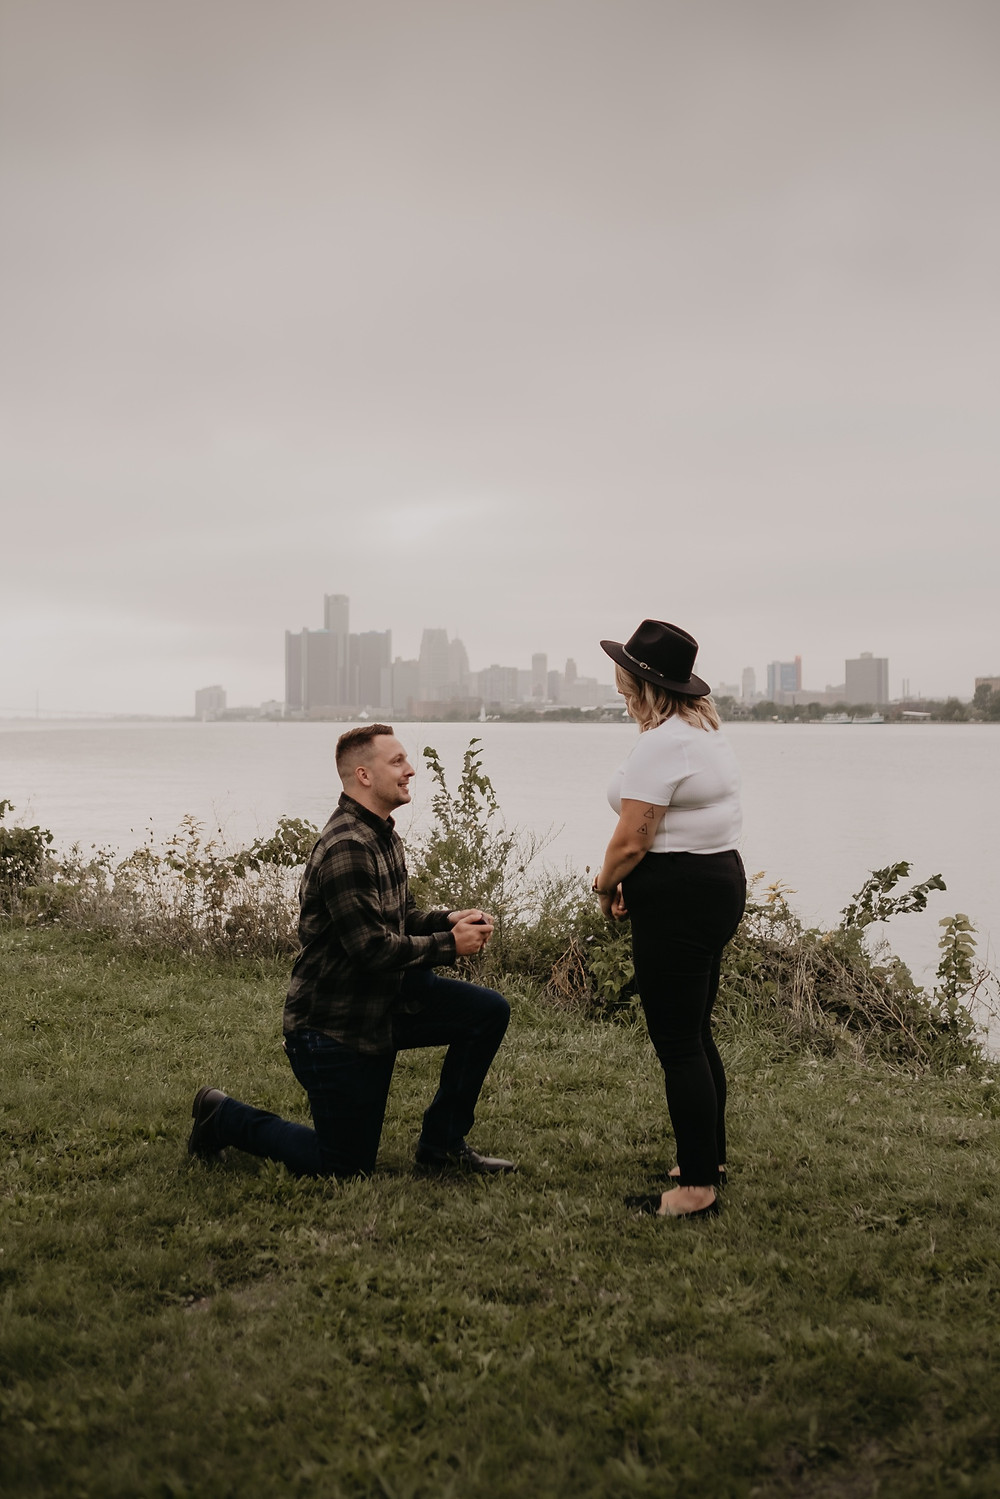 Man proposing on one knee with Detroit river in background. Photographed by Nicole Leanne Photography.